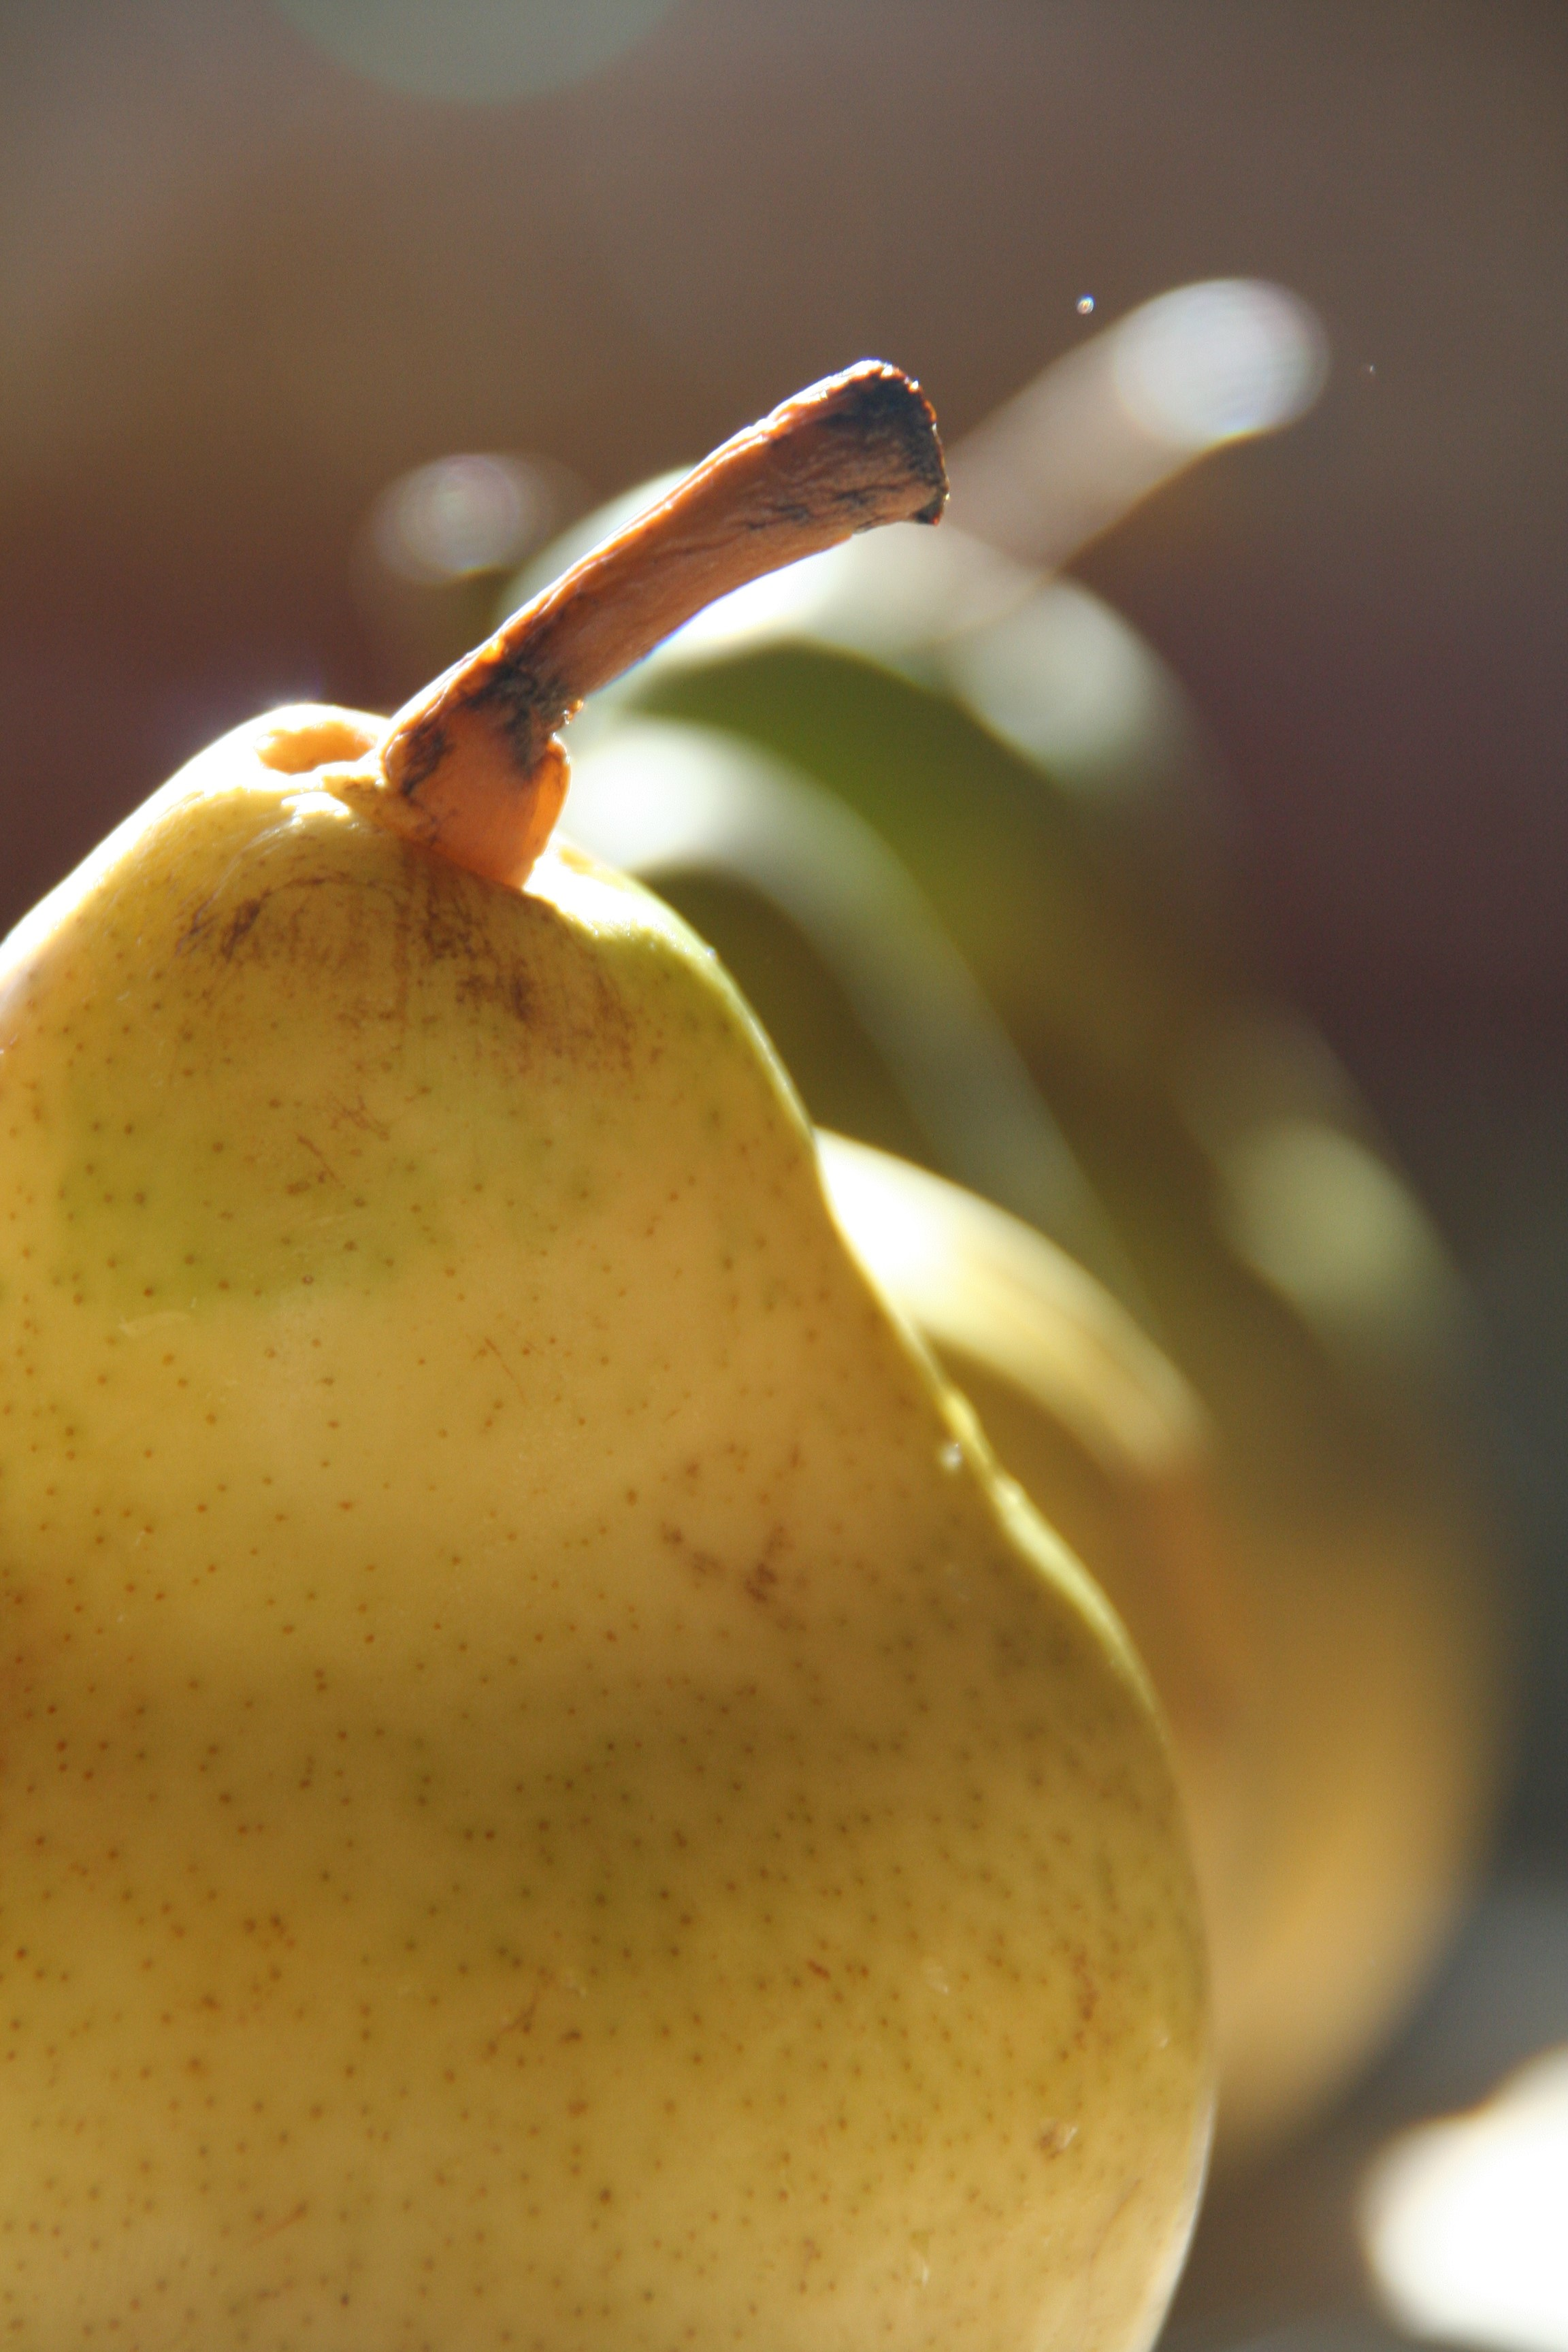 Pear - Pear is a lady.You can see through her.She has an entourage.She has hips.She is older than Christ.She has a shiny wrap.She has freckles.She has too many names.She has traveled around the world.She is transparent.She is good at dessert.